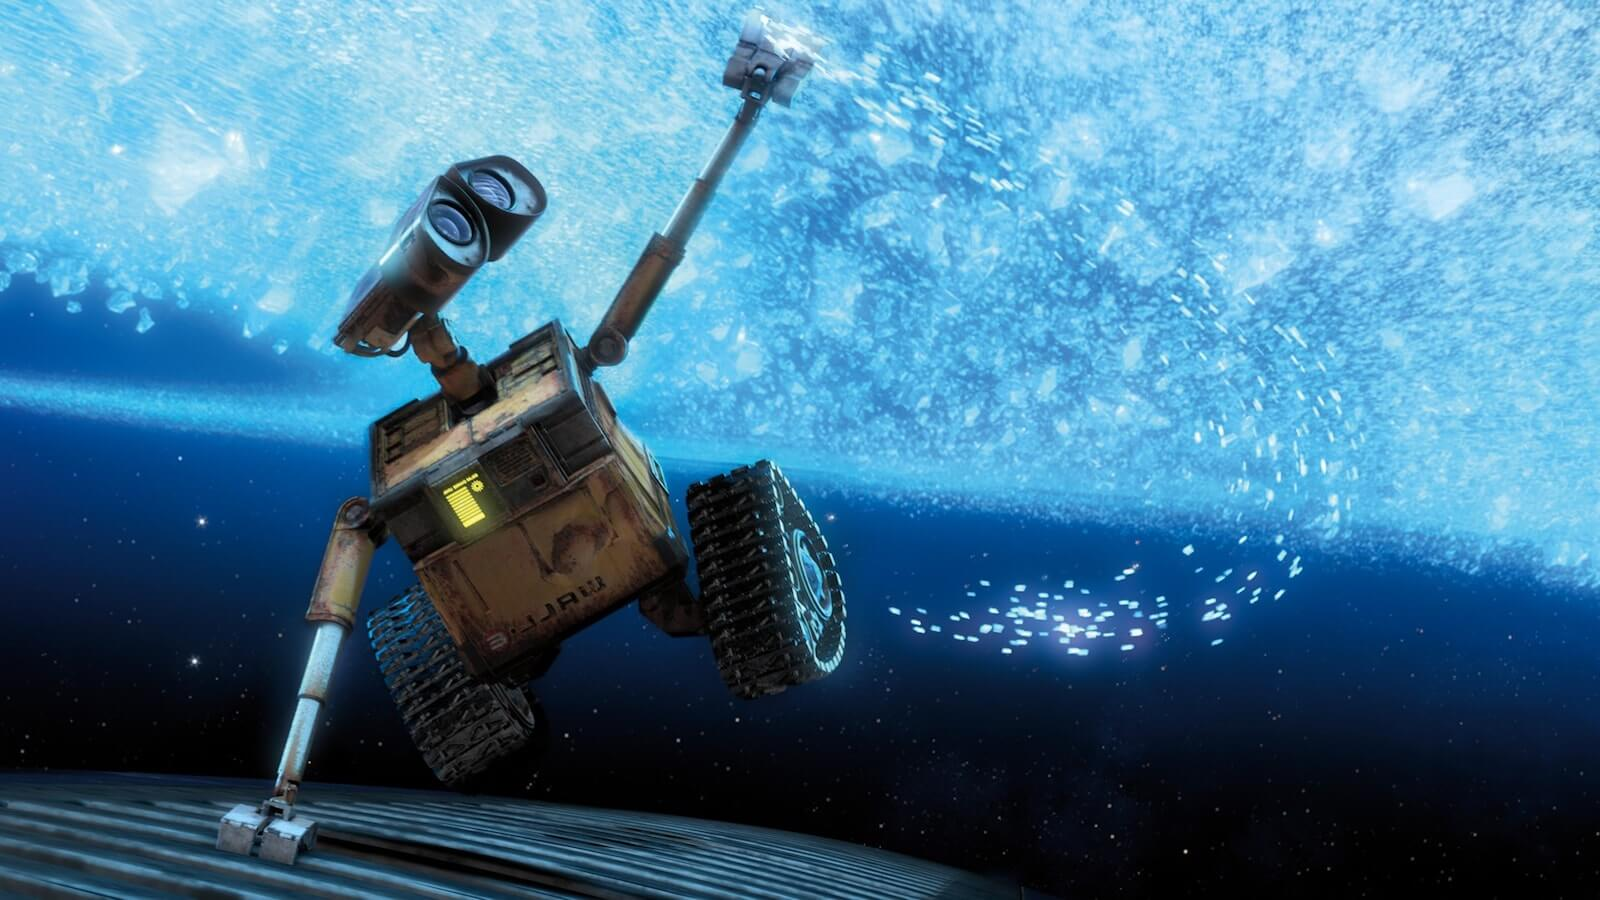 Internal and External Conflict - Wall-E